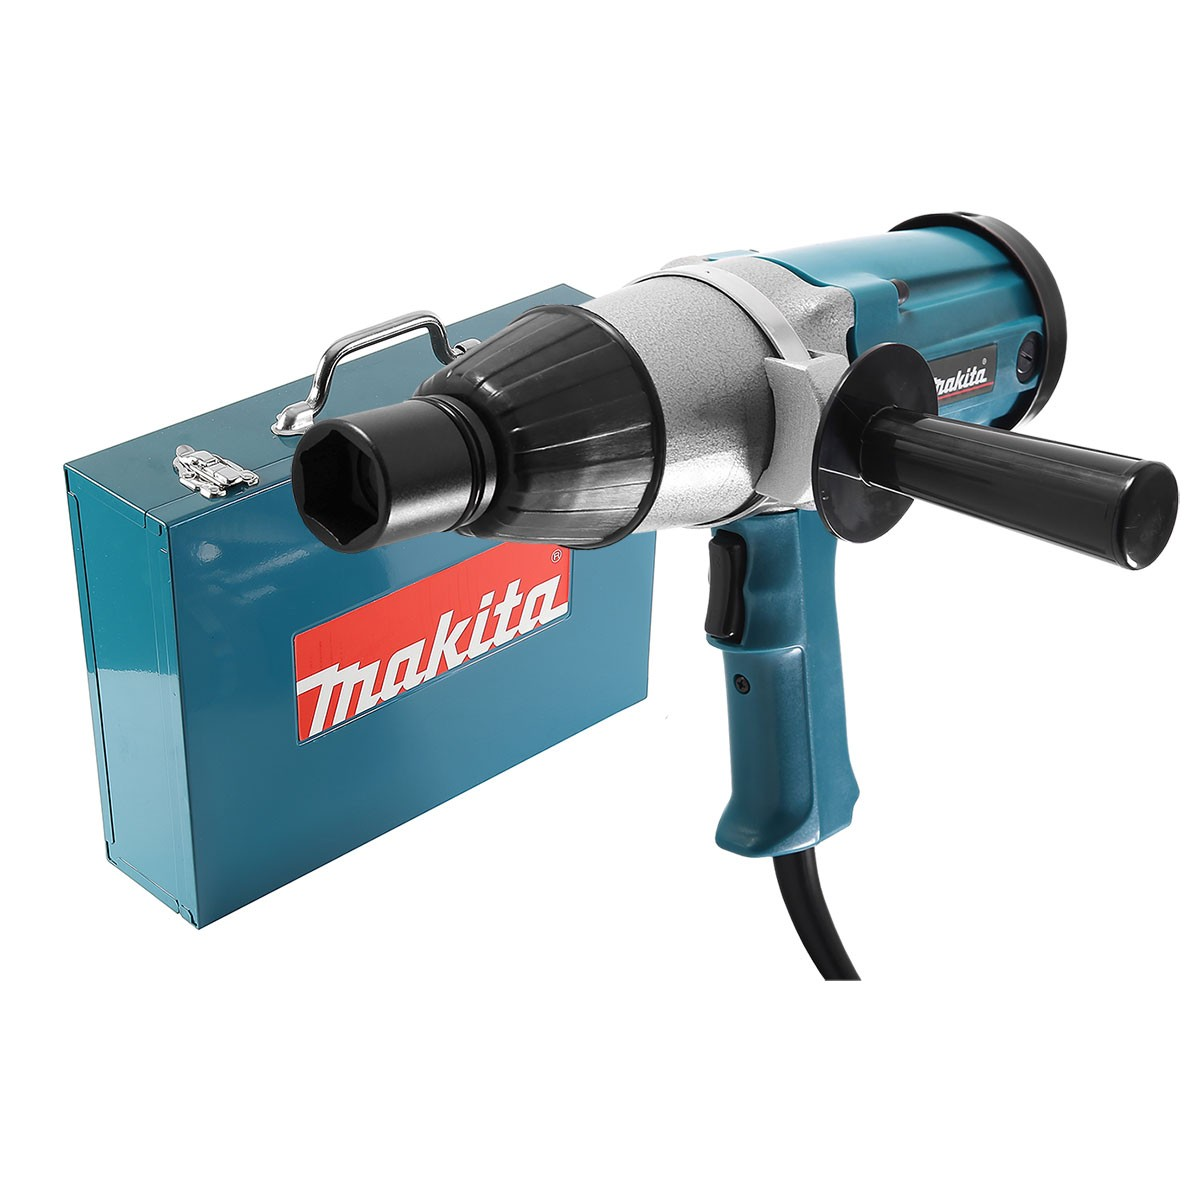 "Makita tw0350 1/2"" impact wrench 110v 